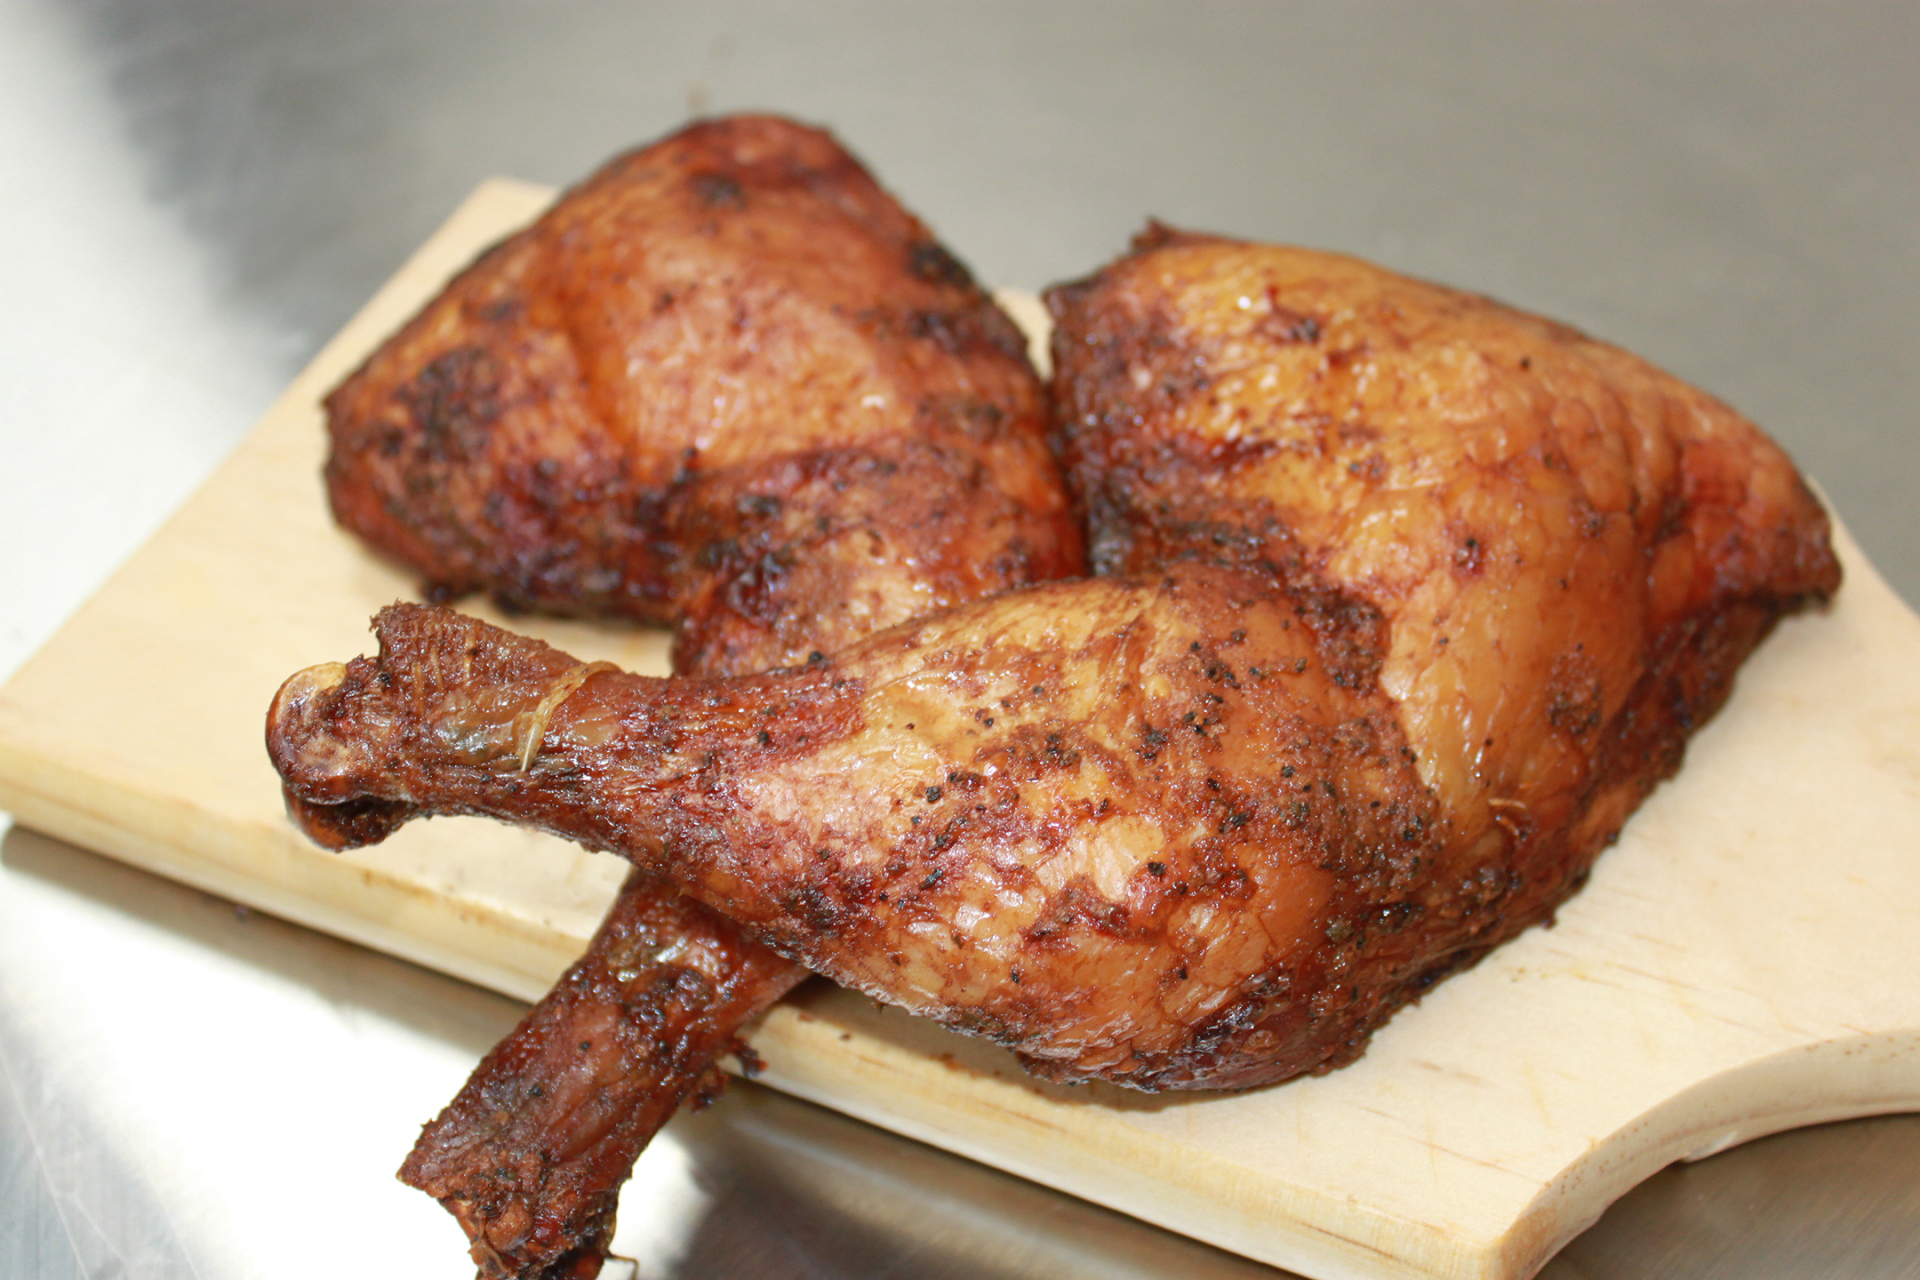 Smoked Chicken - Smoked, juicy flavor served on the bone.